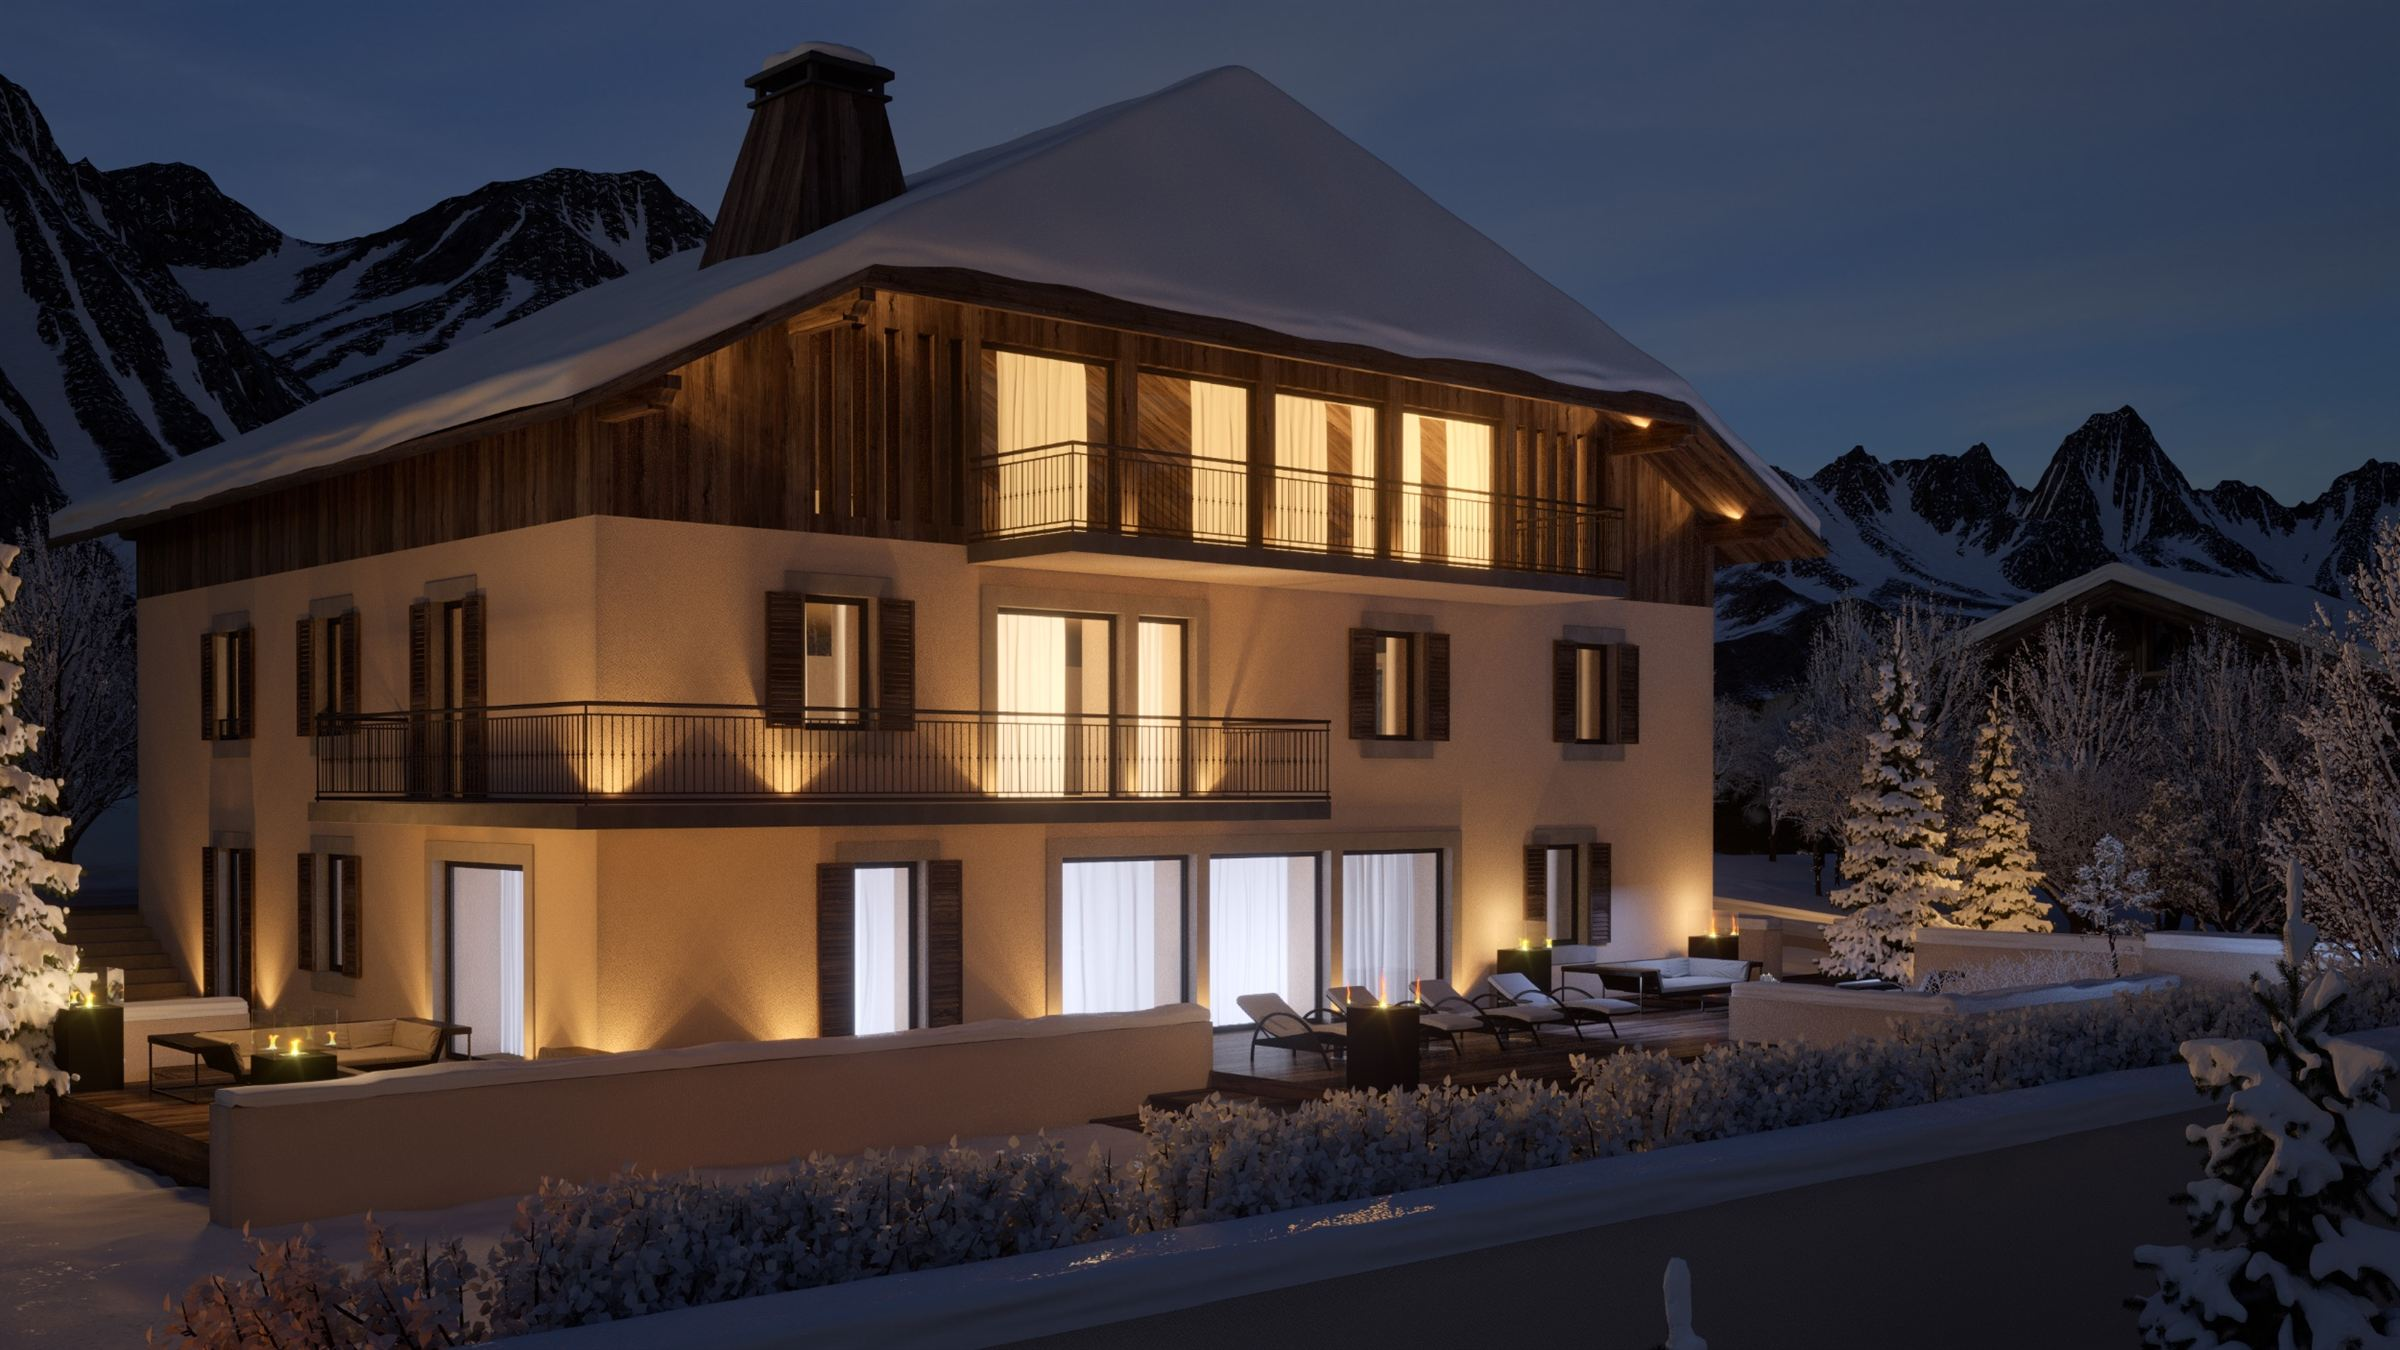 Single Family Home for Sale at High luxury farmhouse close to the centre Chamonix Mont Blanc, Rhone-Alpes, 74400 France